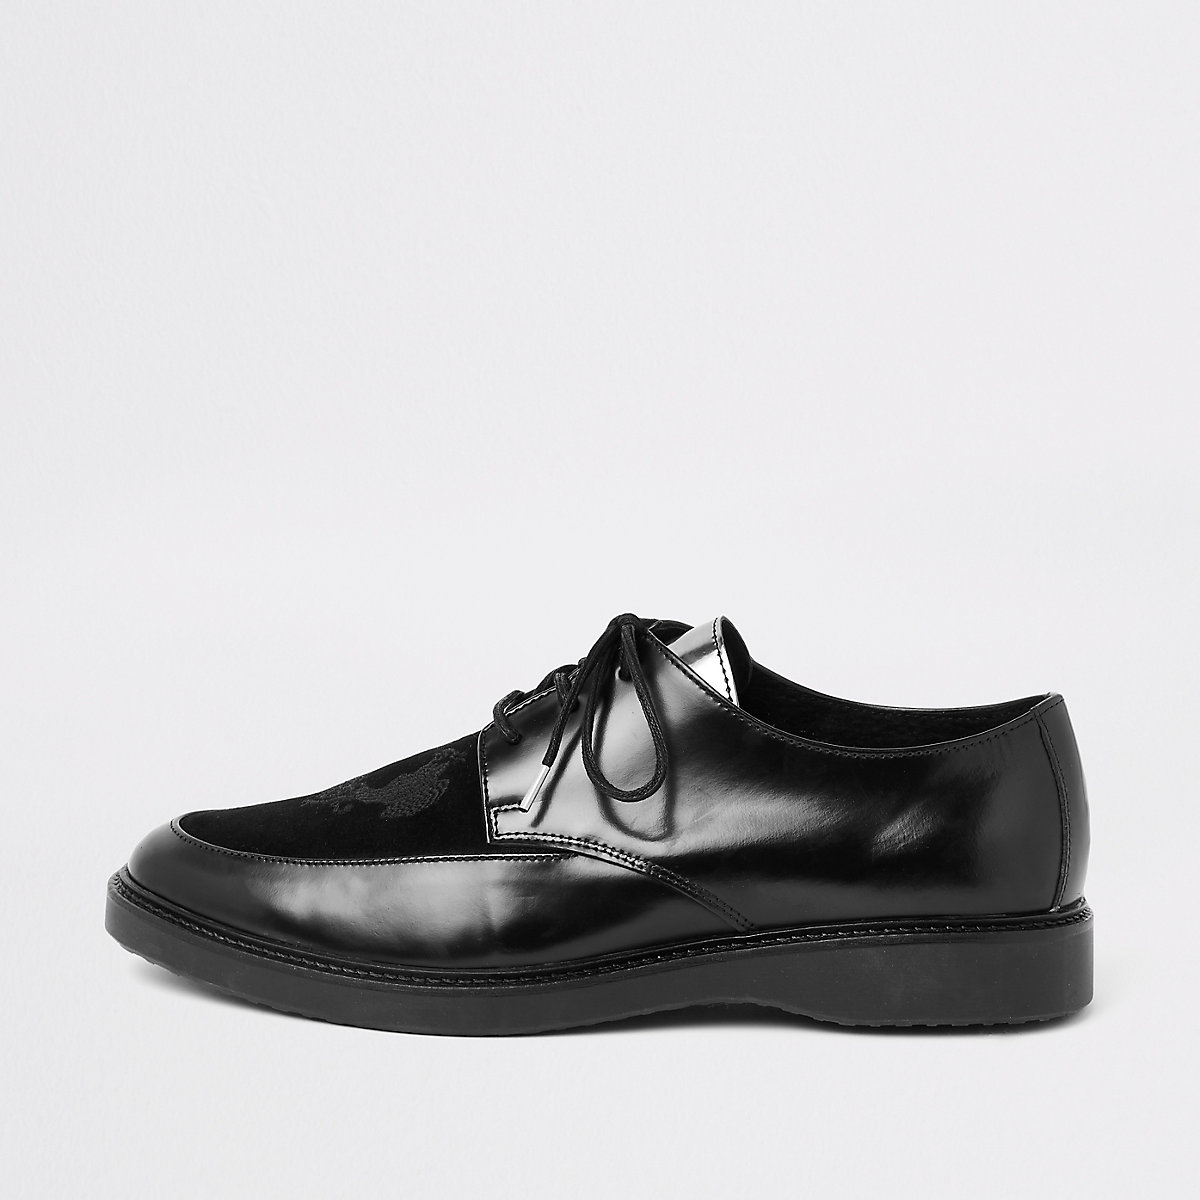 RI 30 black leather creeper shoes